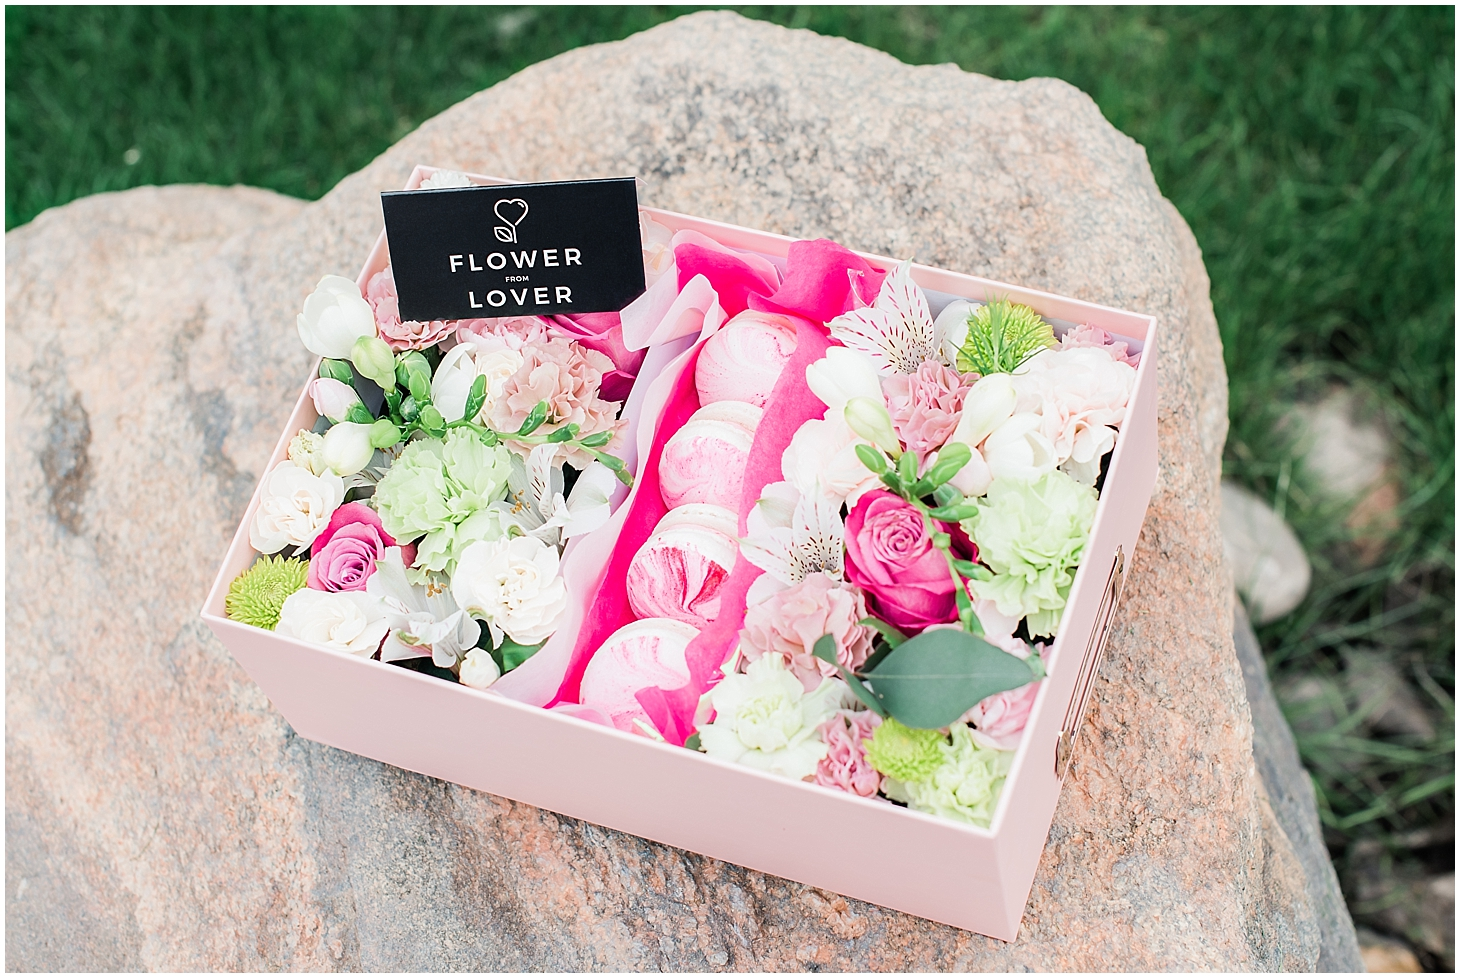 Beautiful box filled with an arrangement of lovely flowers and delicious French macarons made with love by Flower from Lower. Photos taken by Jade Min Photography.